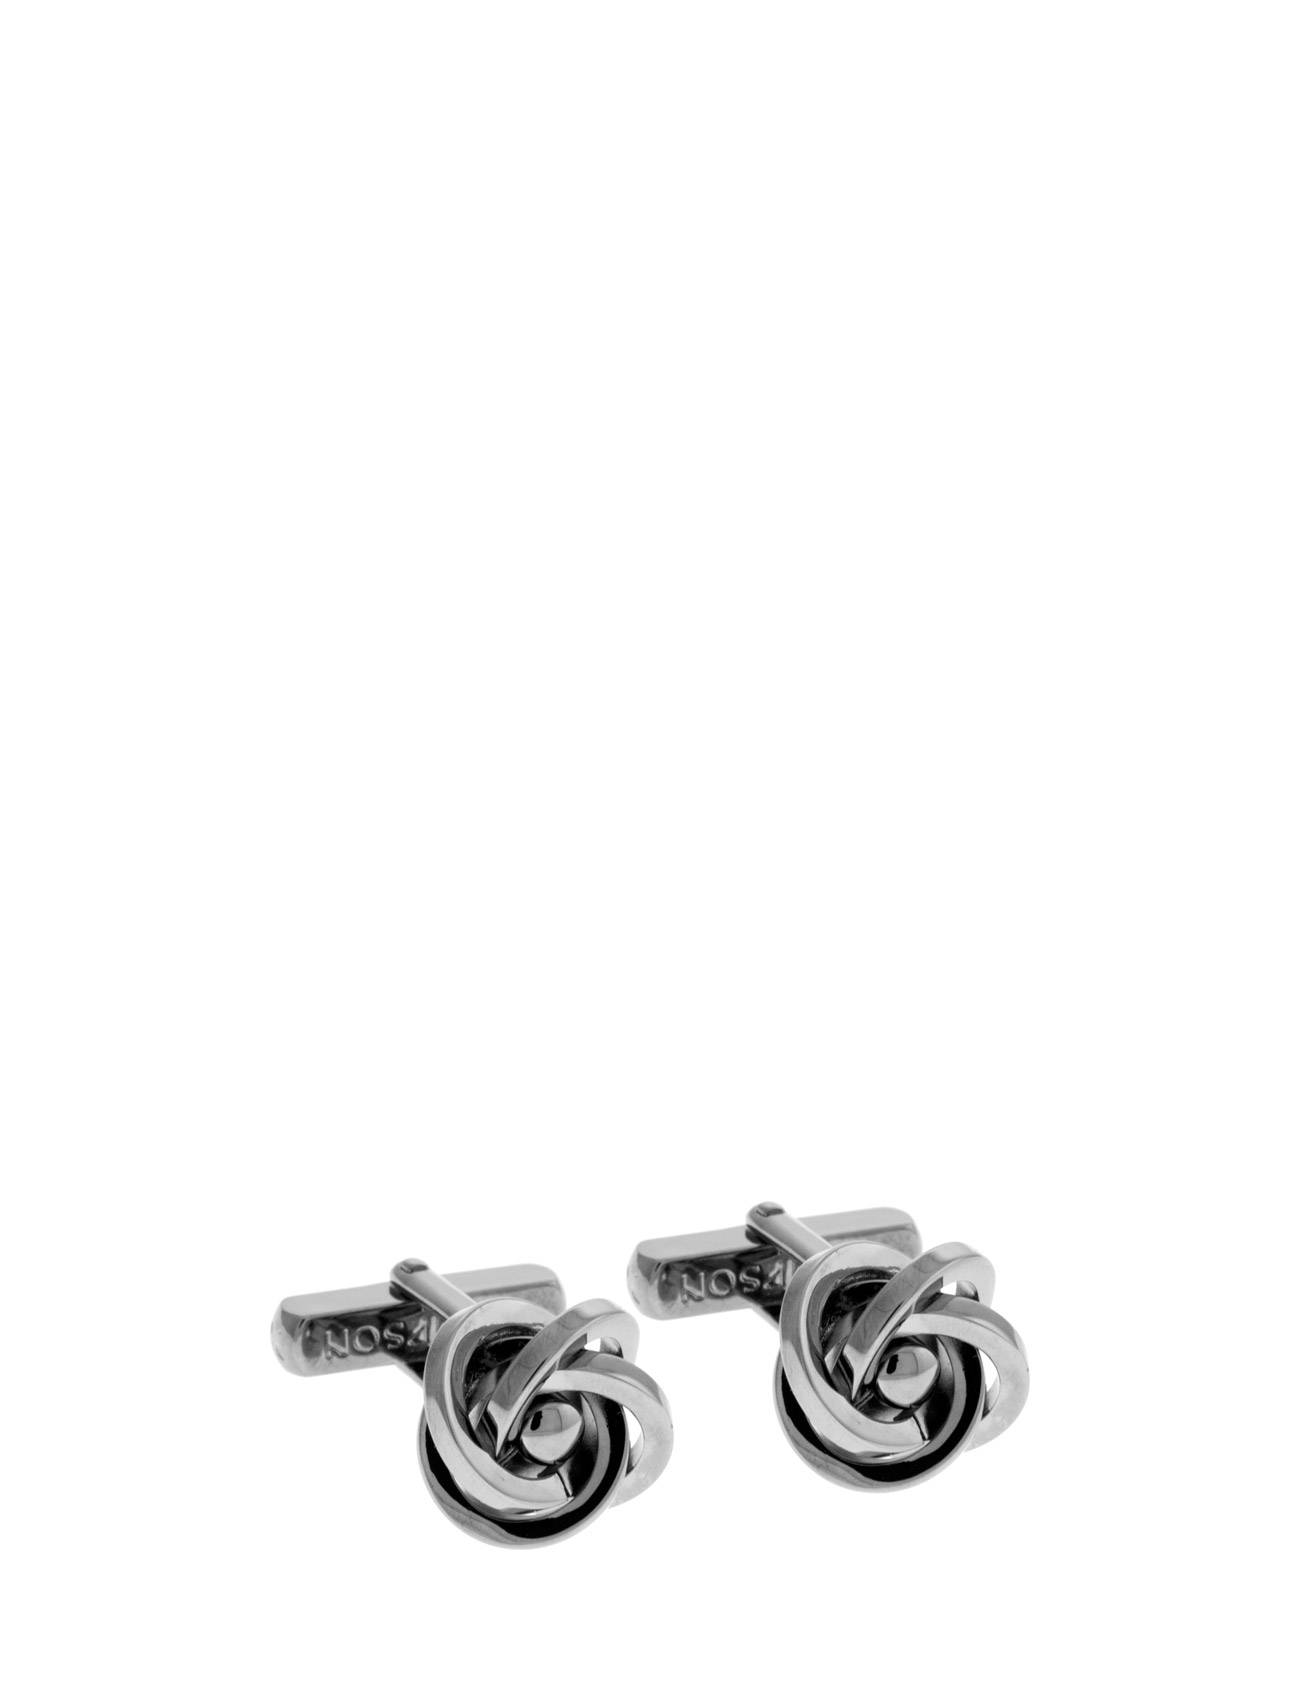 Thompson Knot Cufflinks